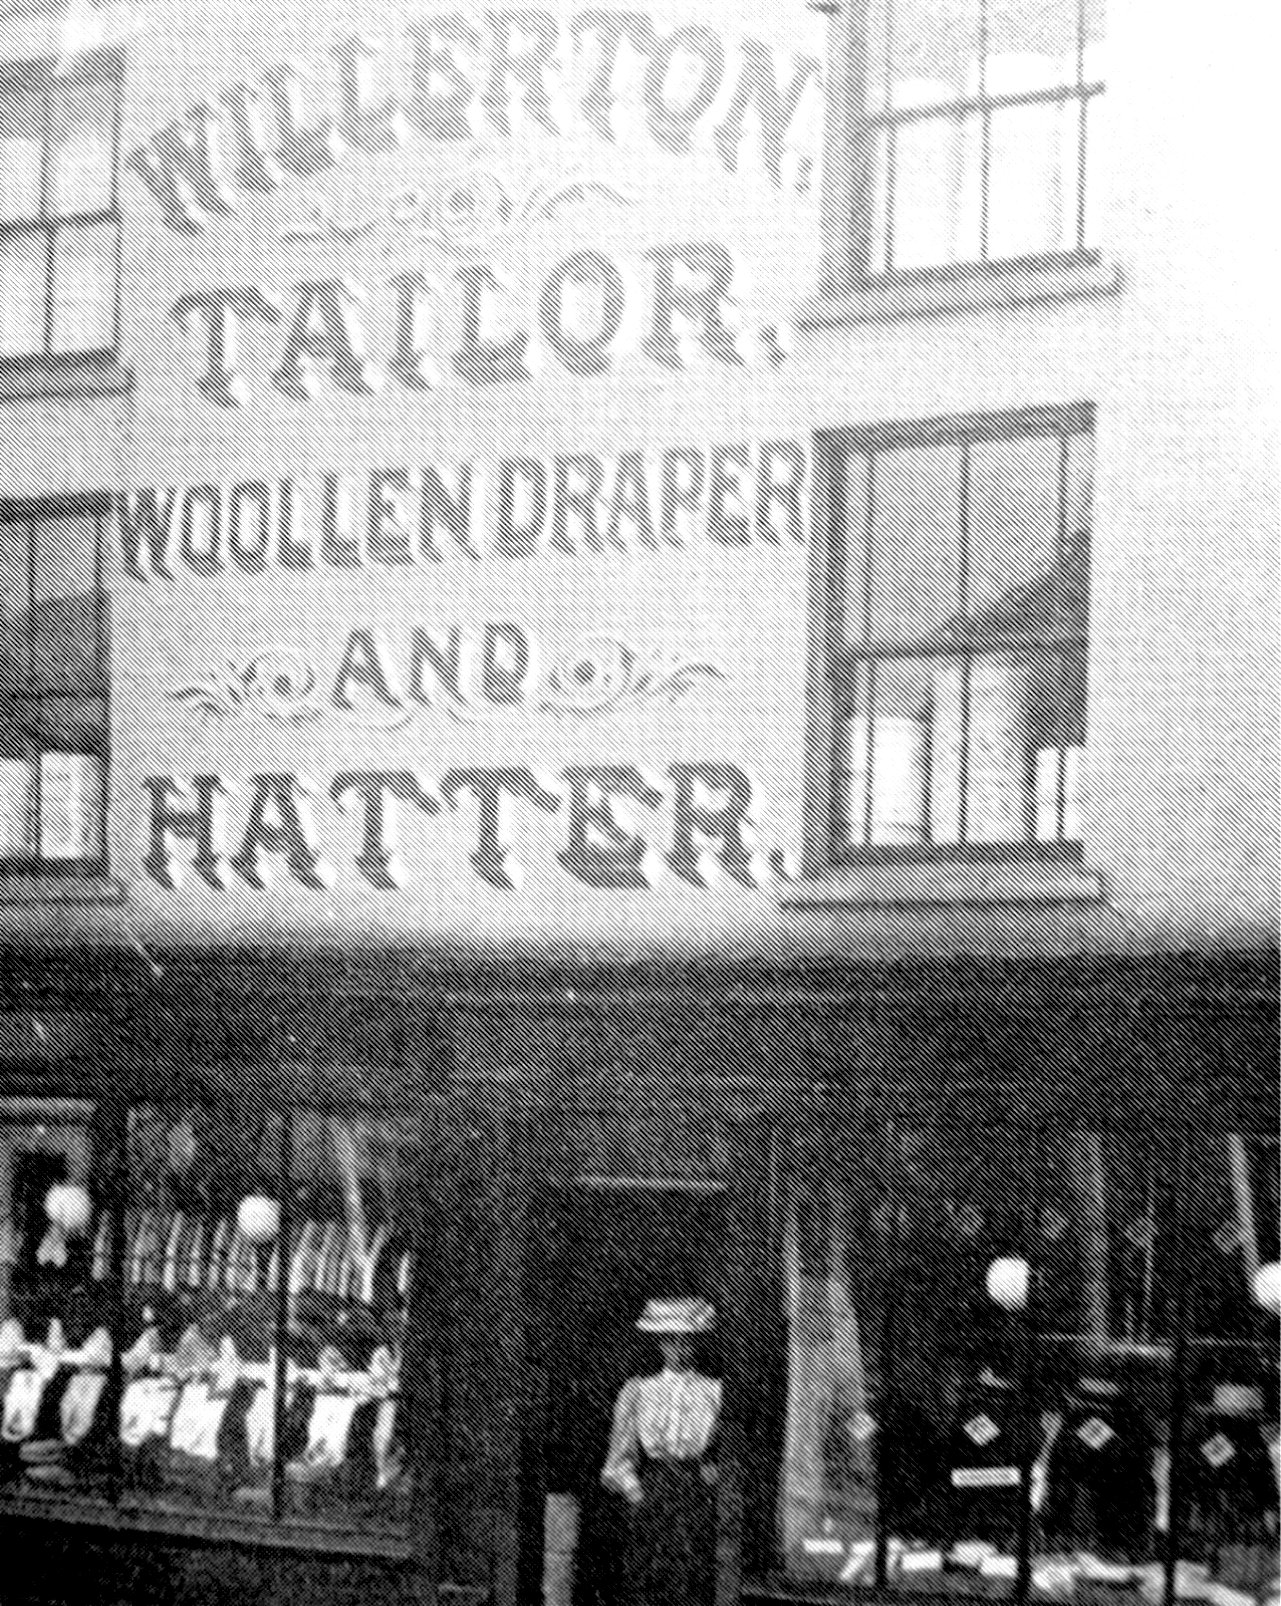 The shop of Willerton Tailor, High Street, Holbeach. Early 1900's